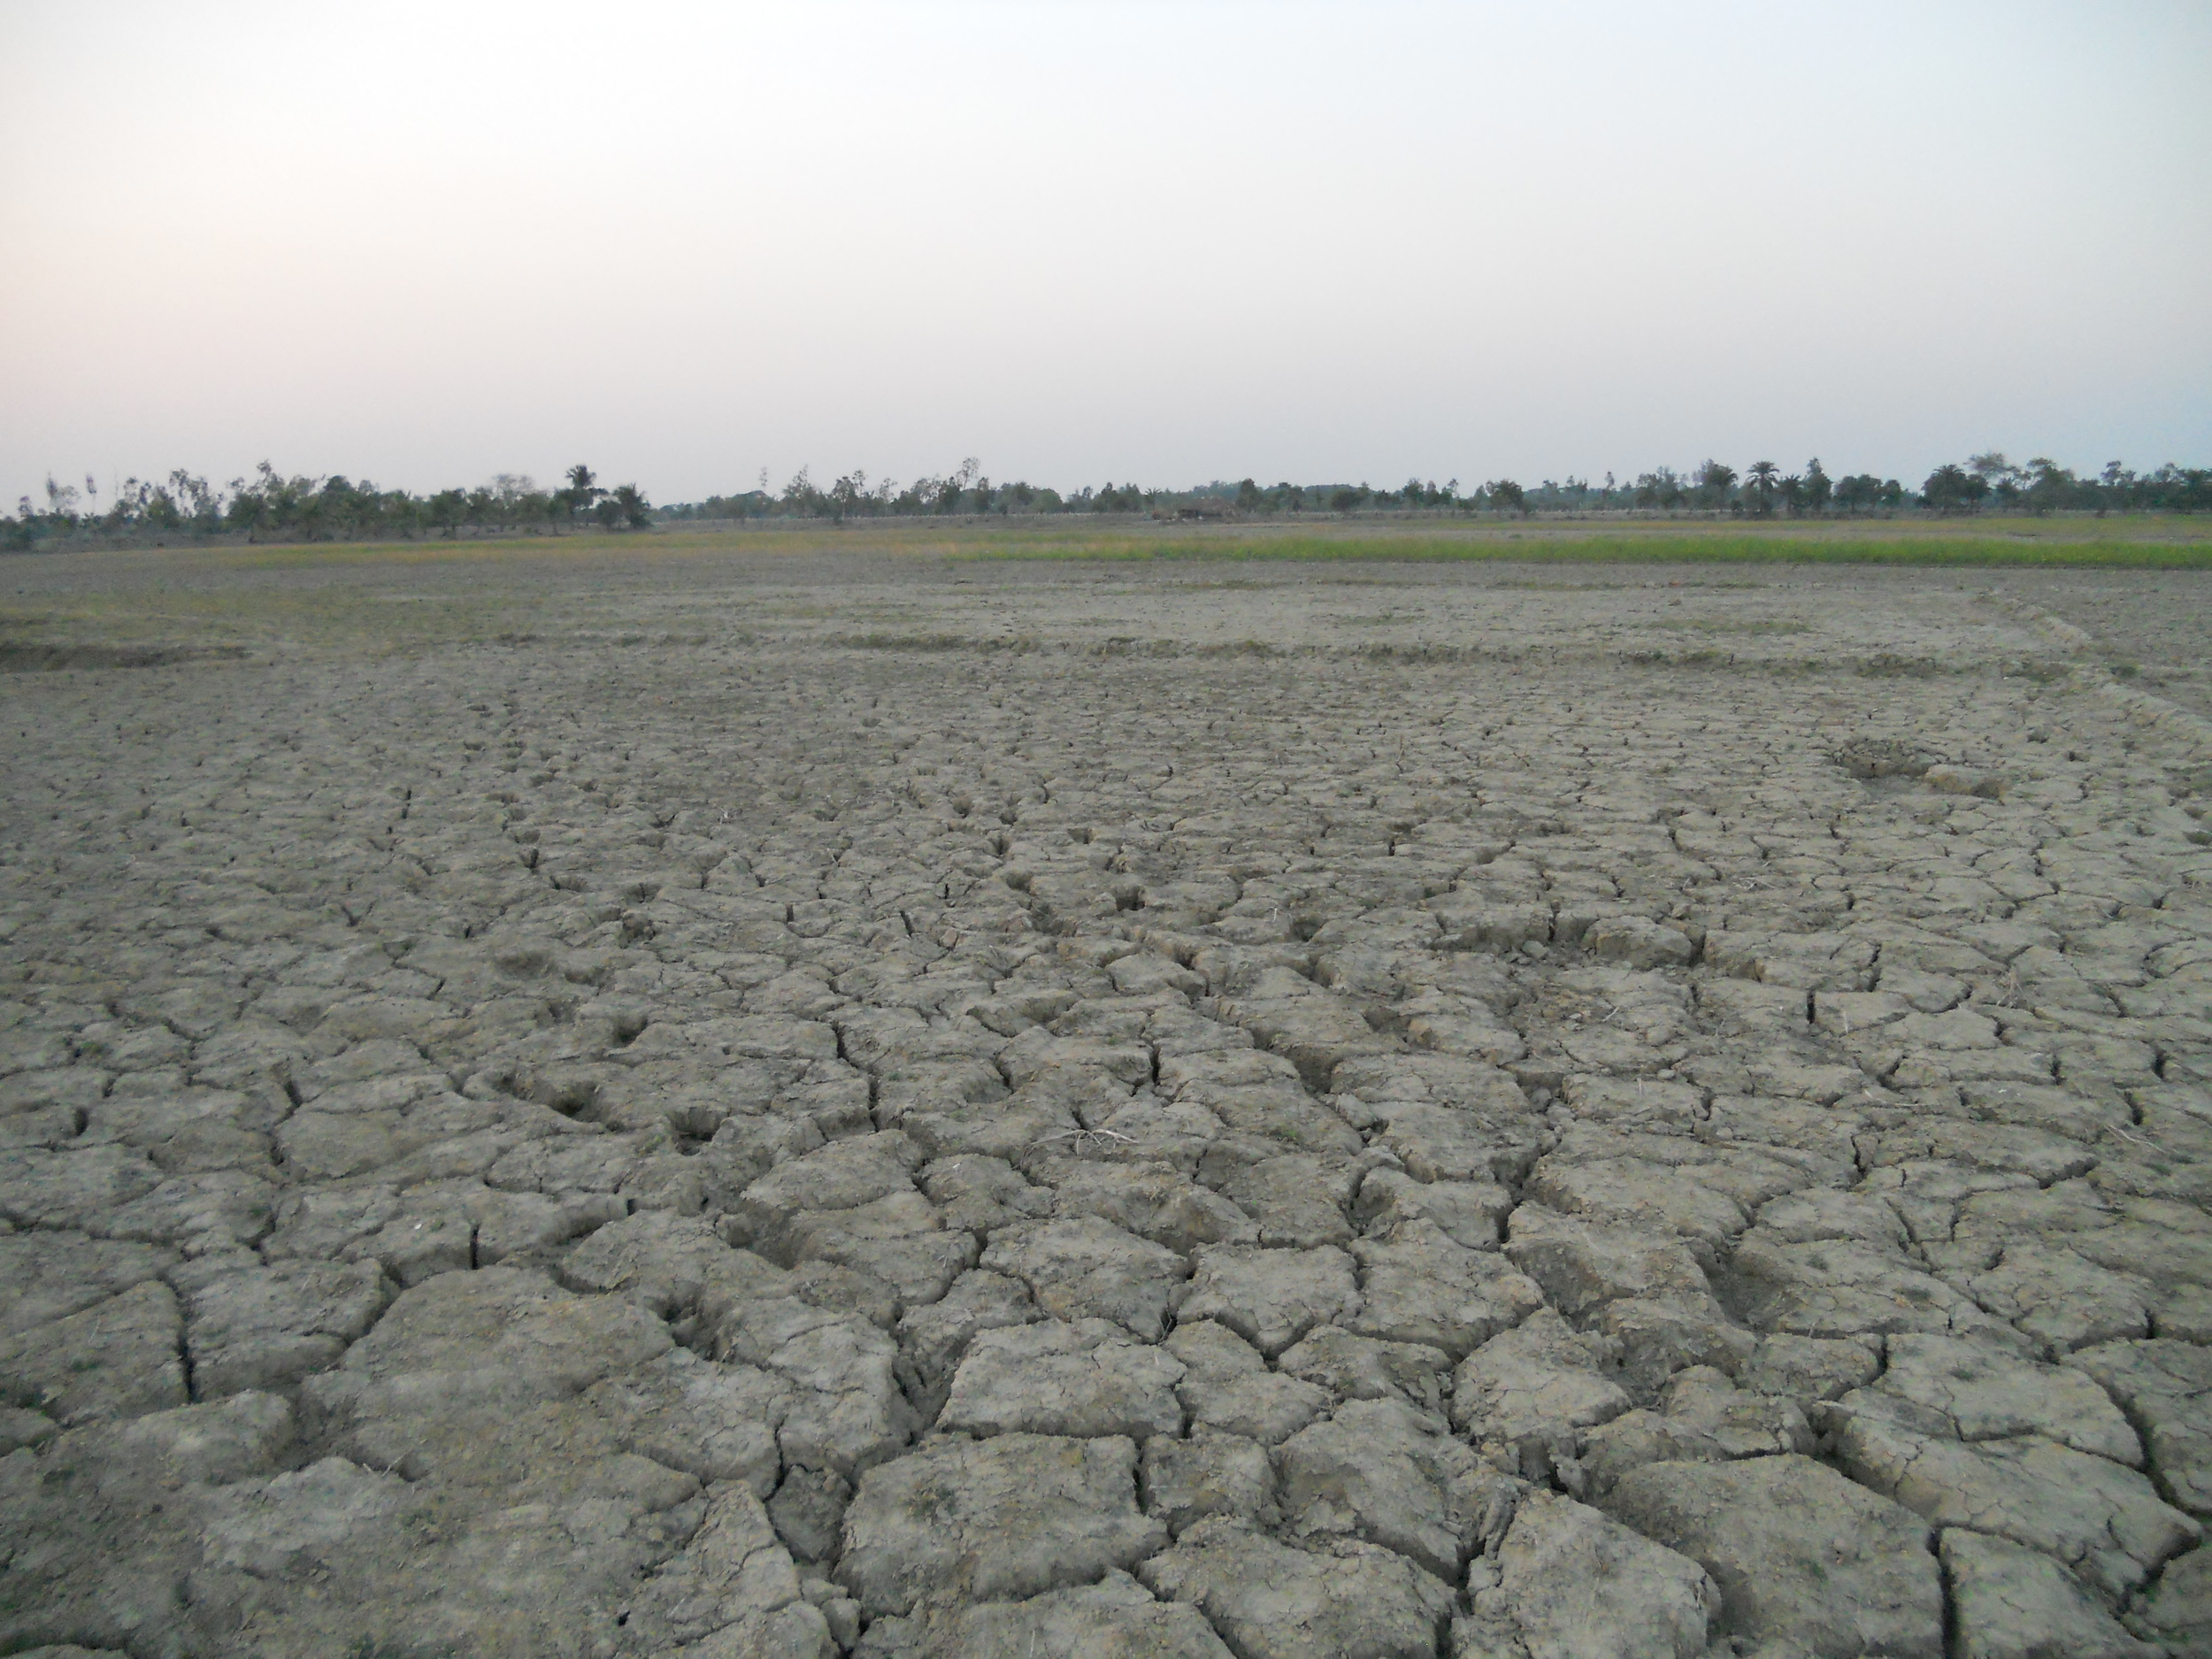 Many of the fields that were abundant before Aila are now barren due to salinity.